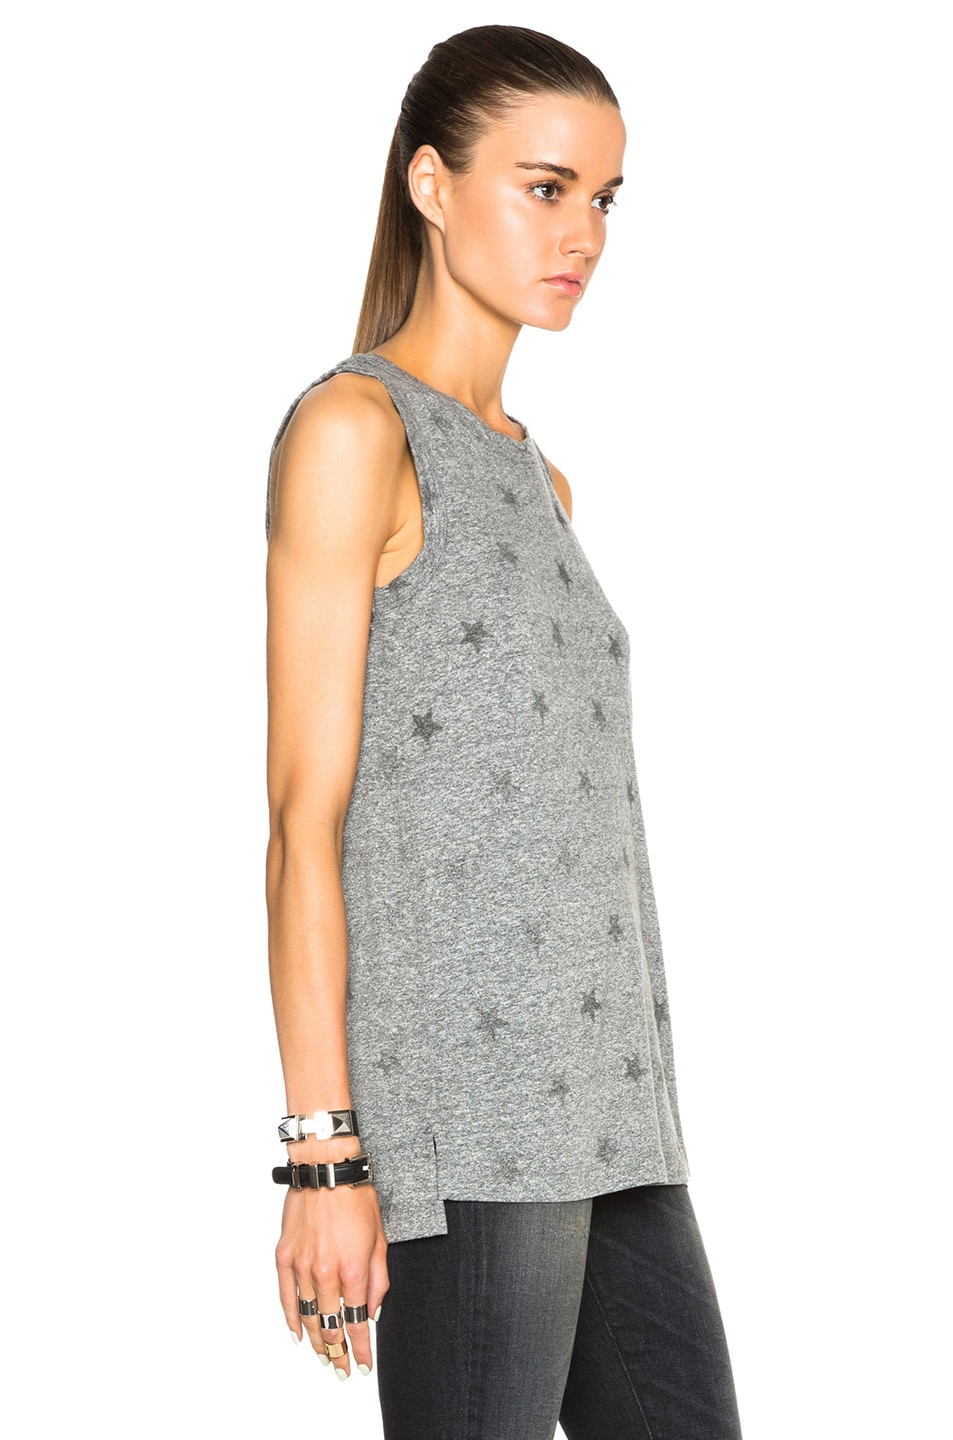 e09fe47c01ea7 Image 3 of Current Elliott Muscle Tee in Heather Grey Stars